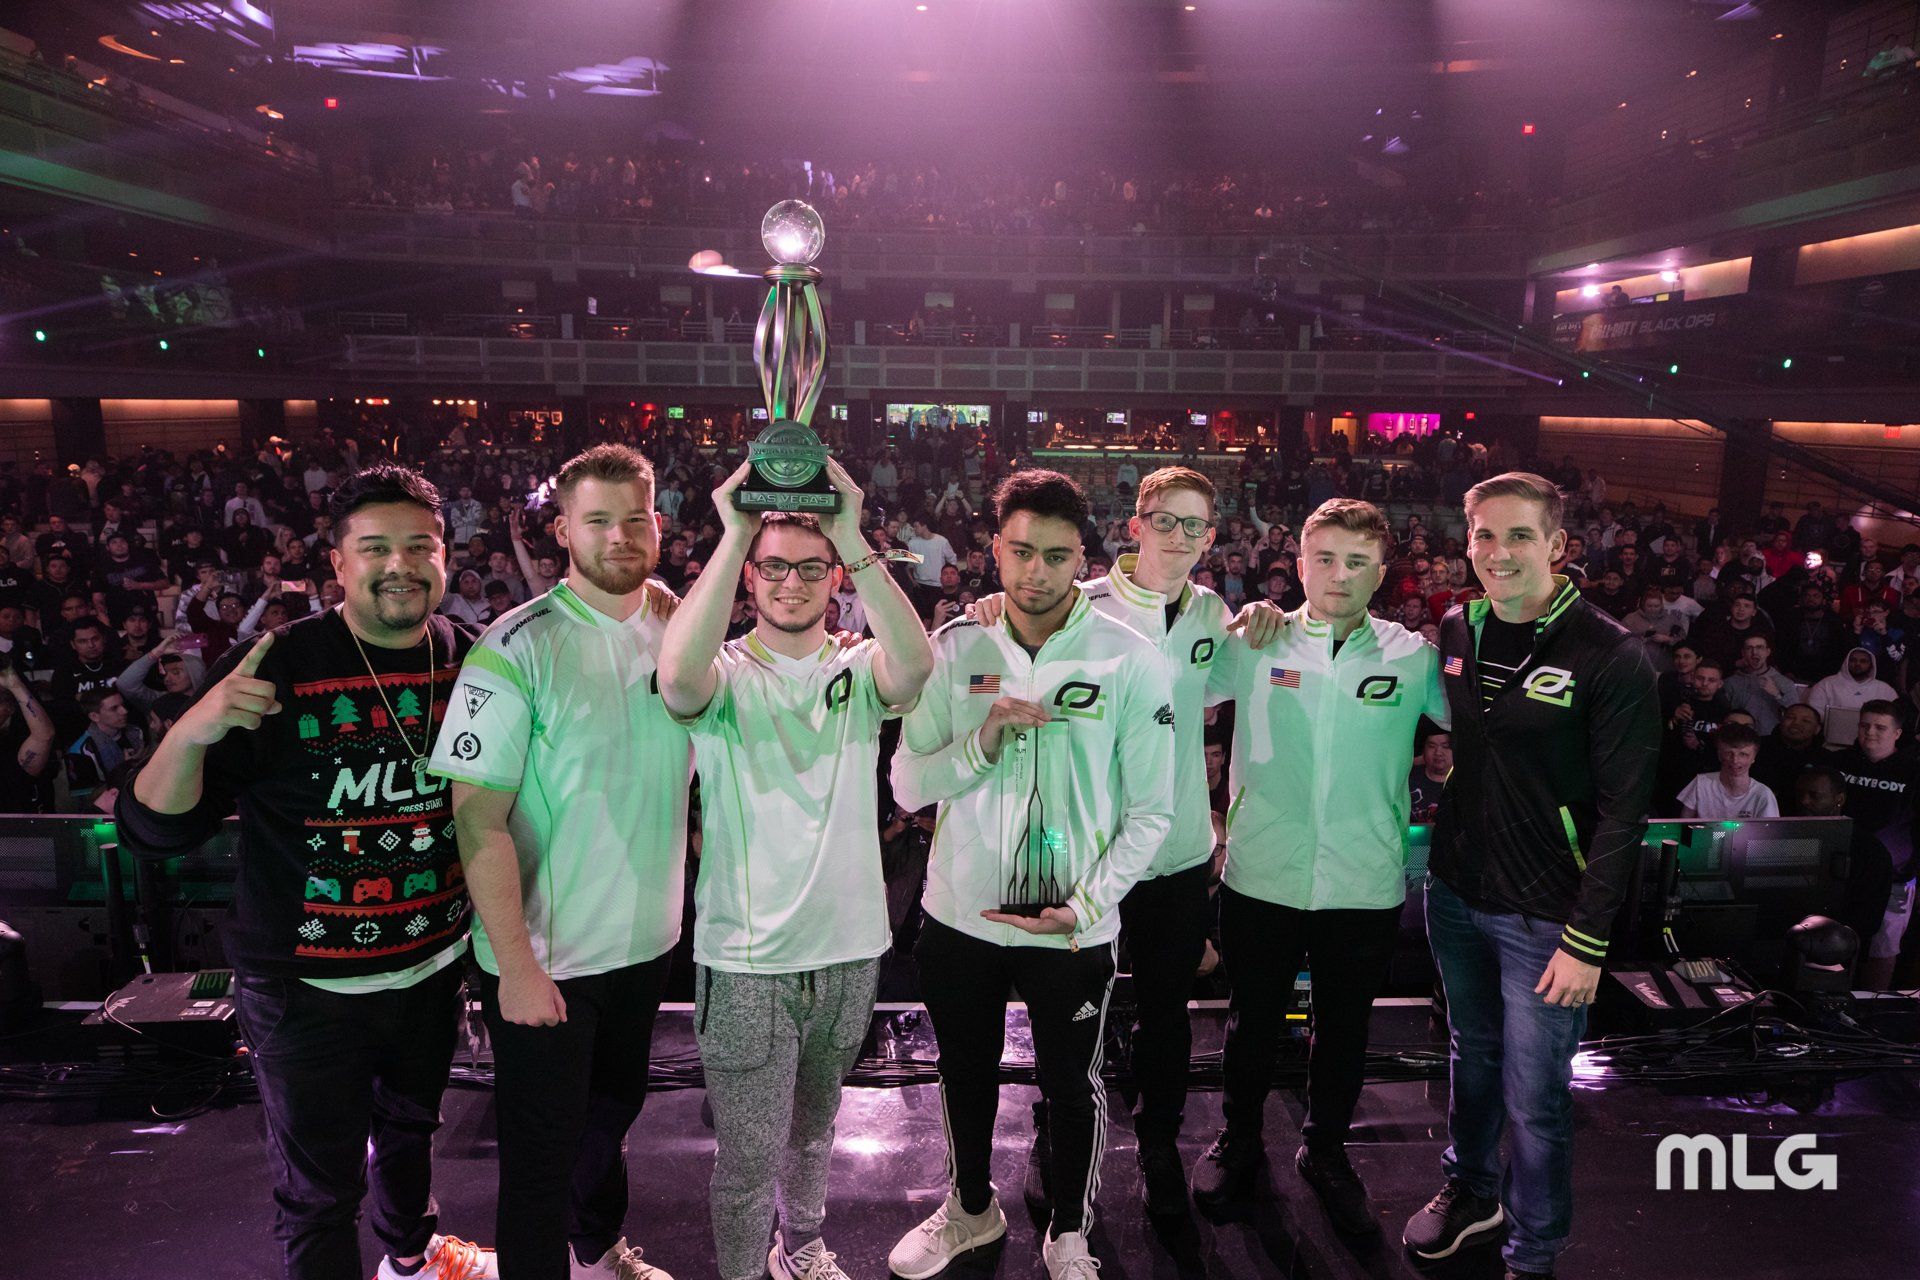 2019 CWL Las Vegas winners OpTic Gaming